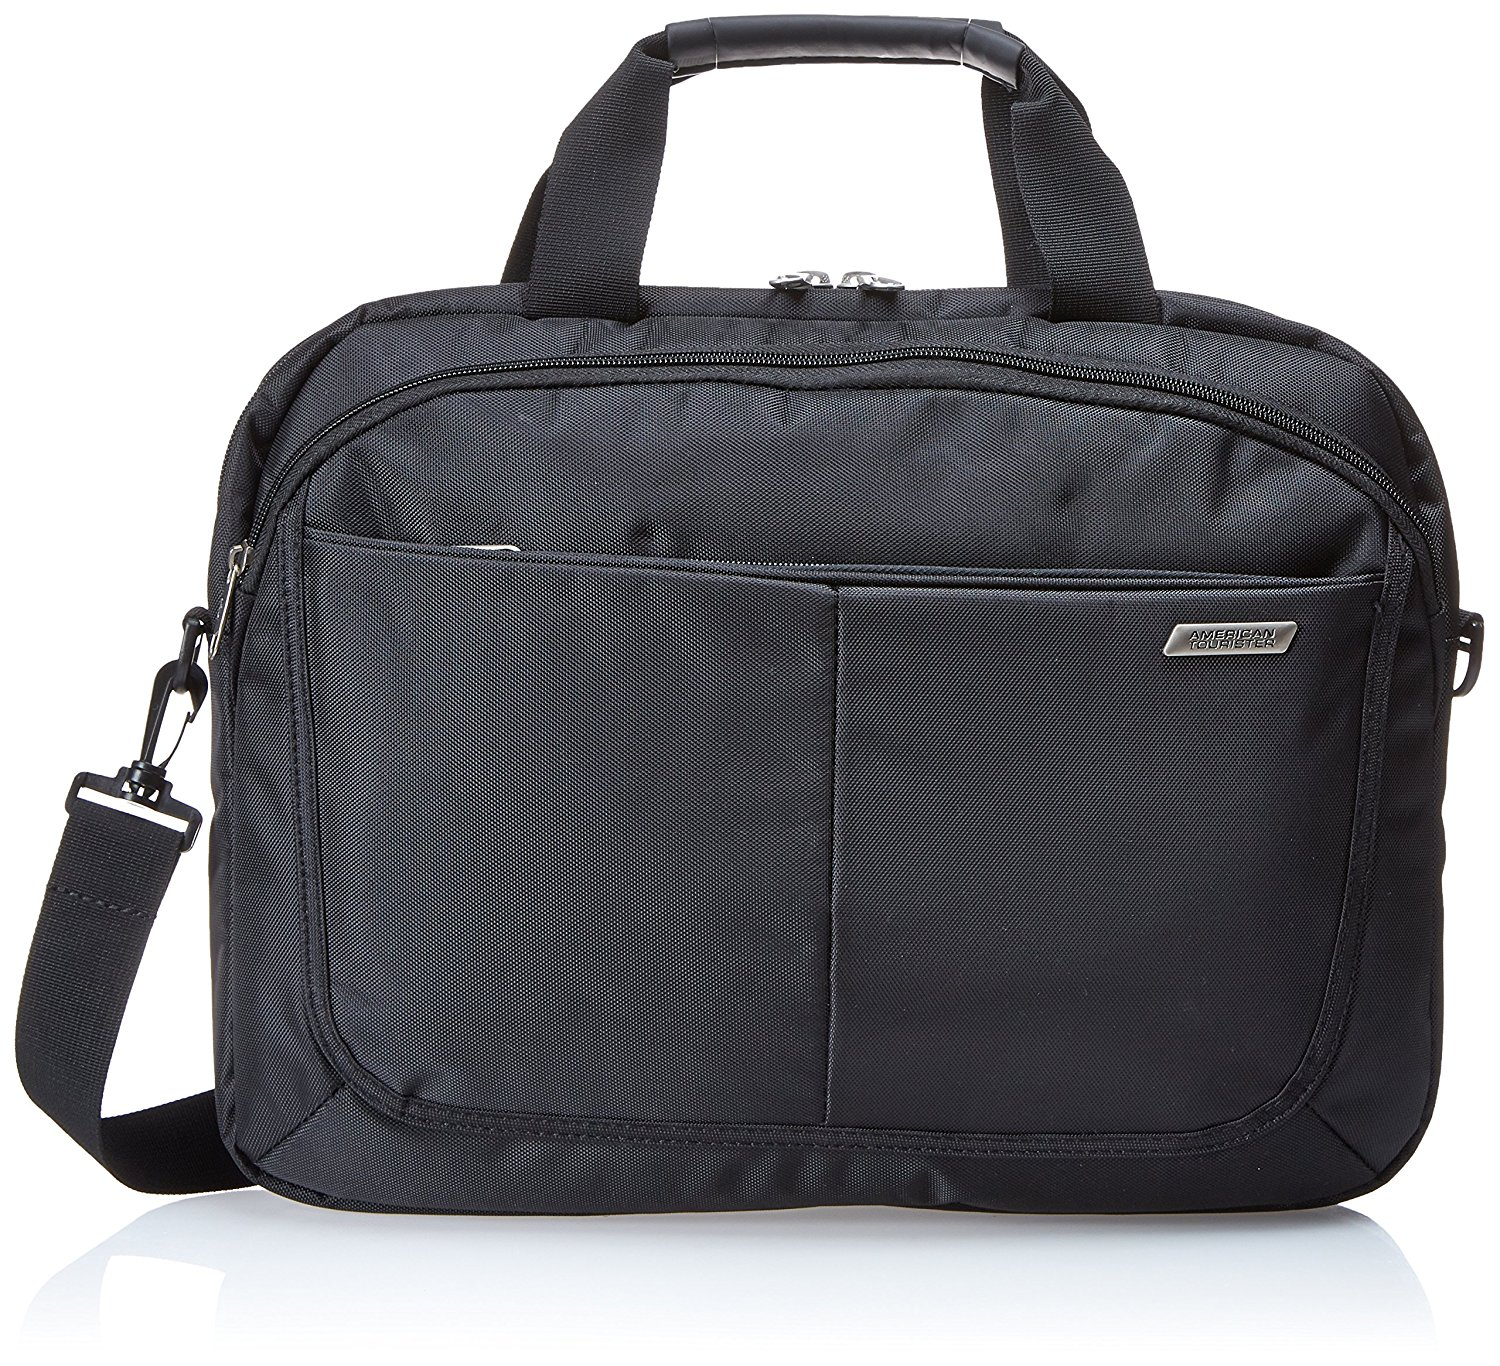 634f4897bf Get Quotations · American Tourister Slim Brief - 15.6 Business Bag